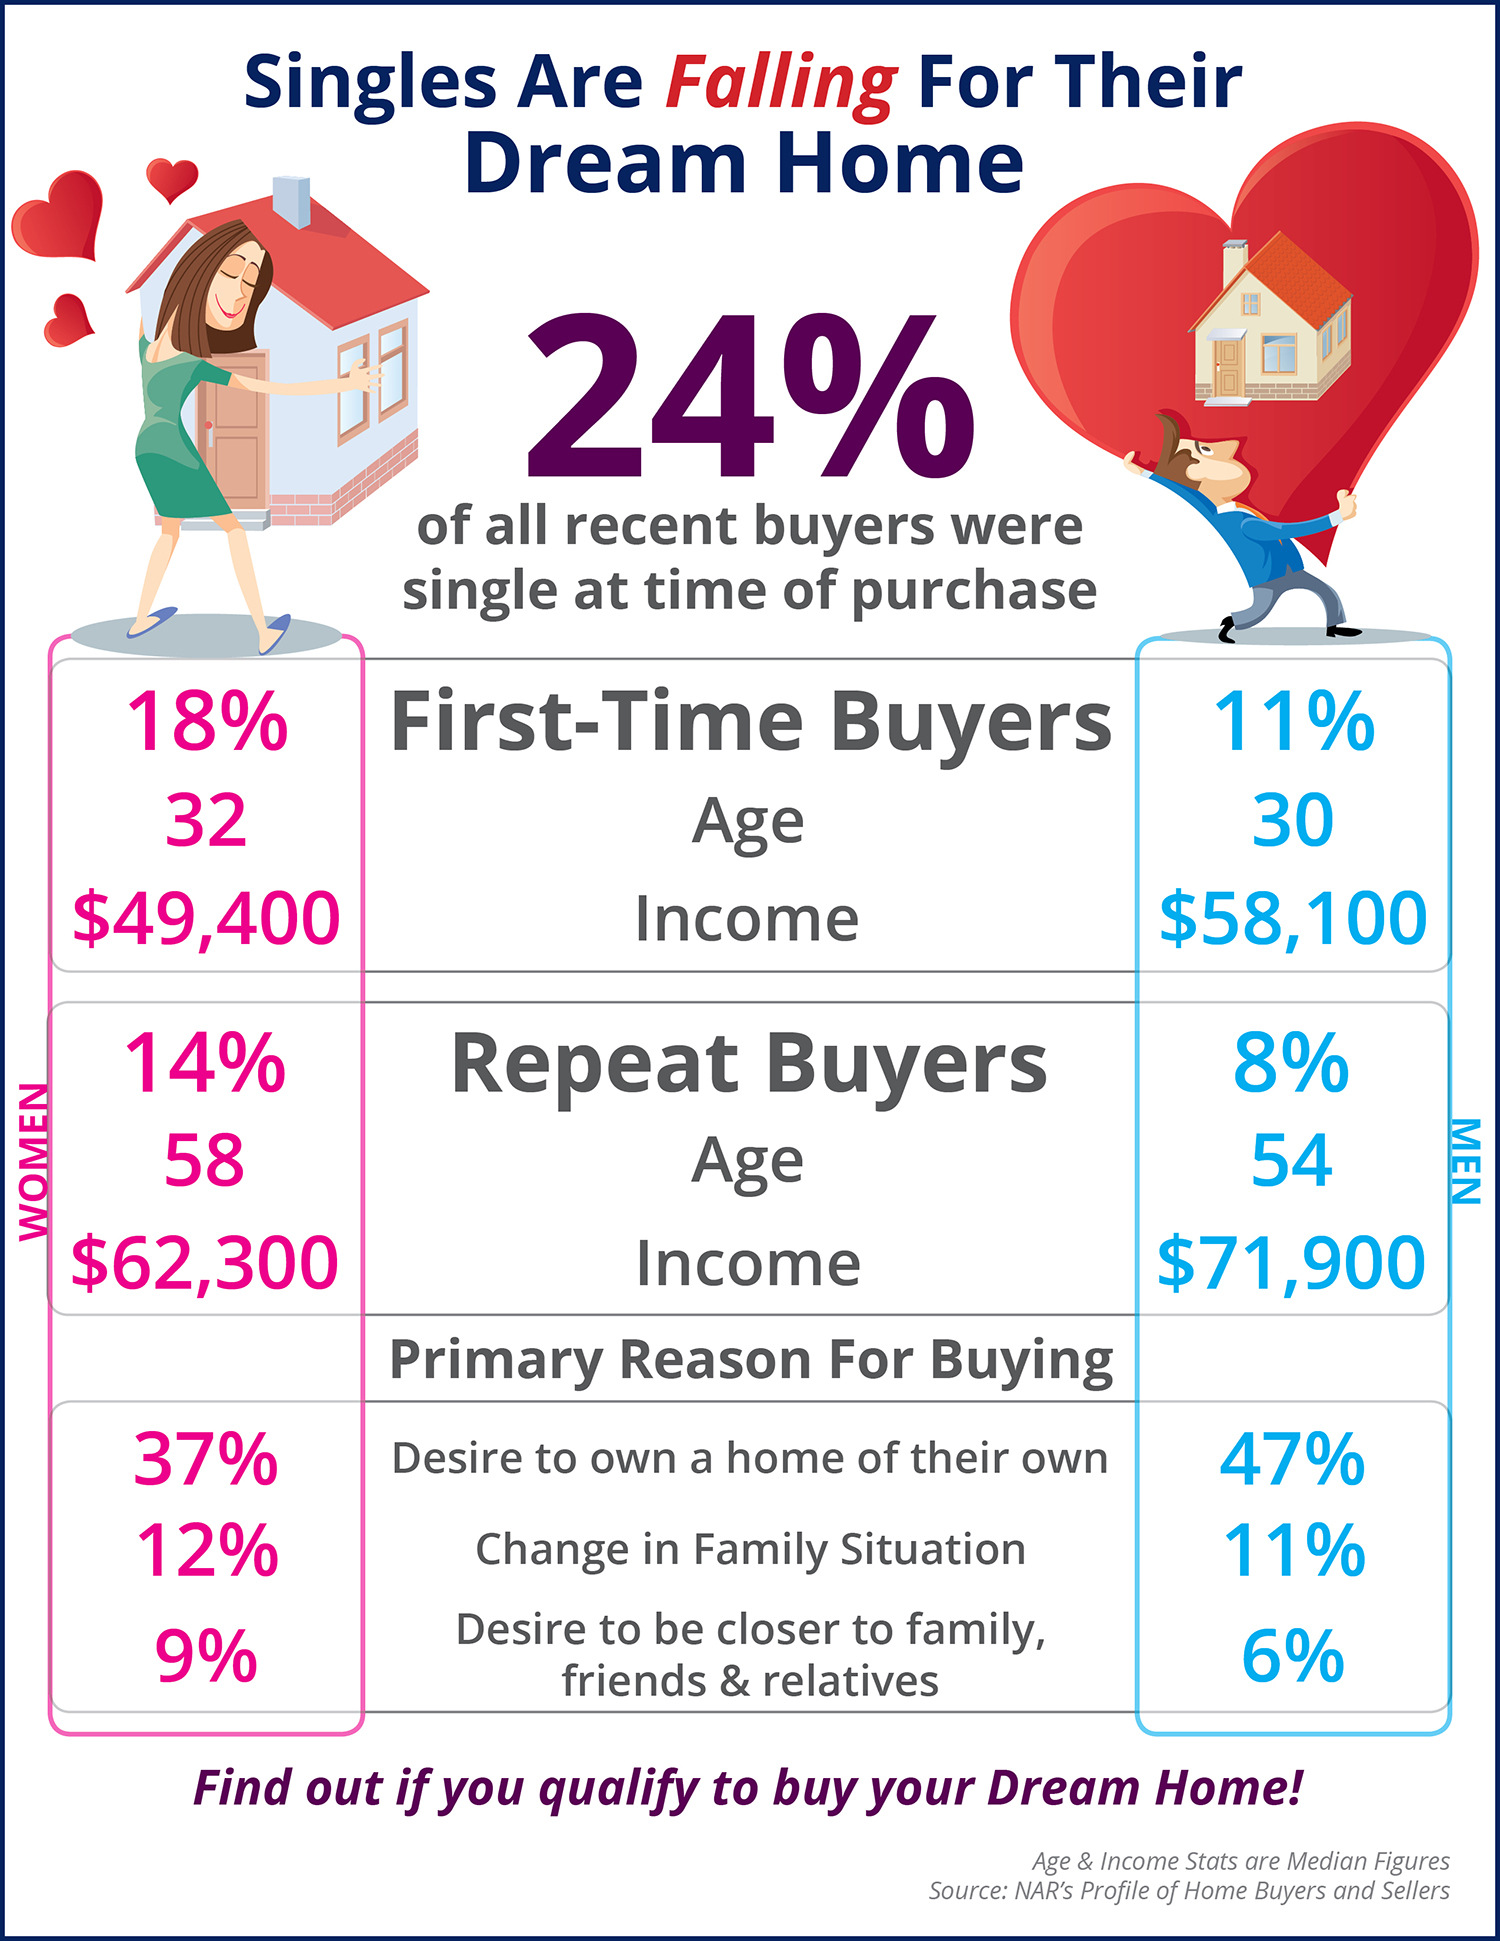 Singles Are Falling For Their Dream Home | Simplifying The Market